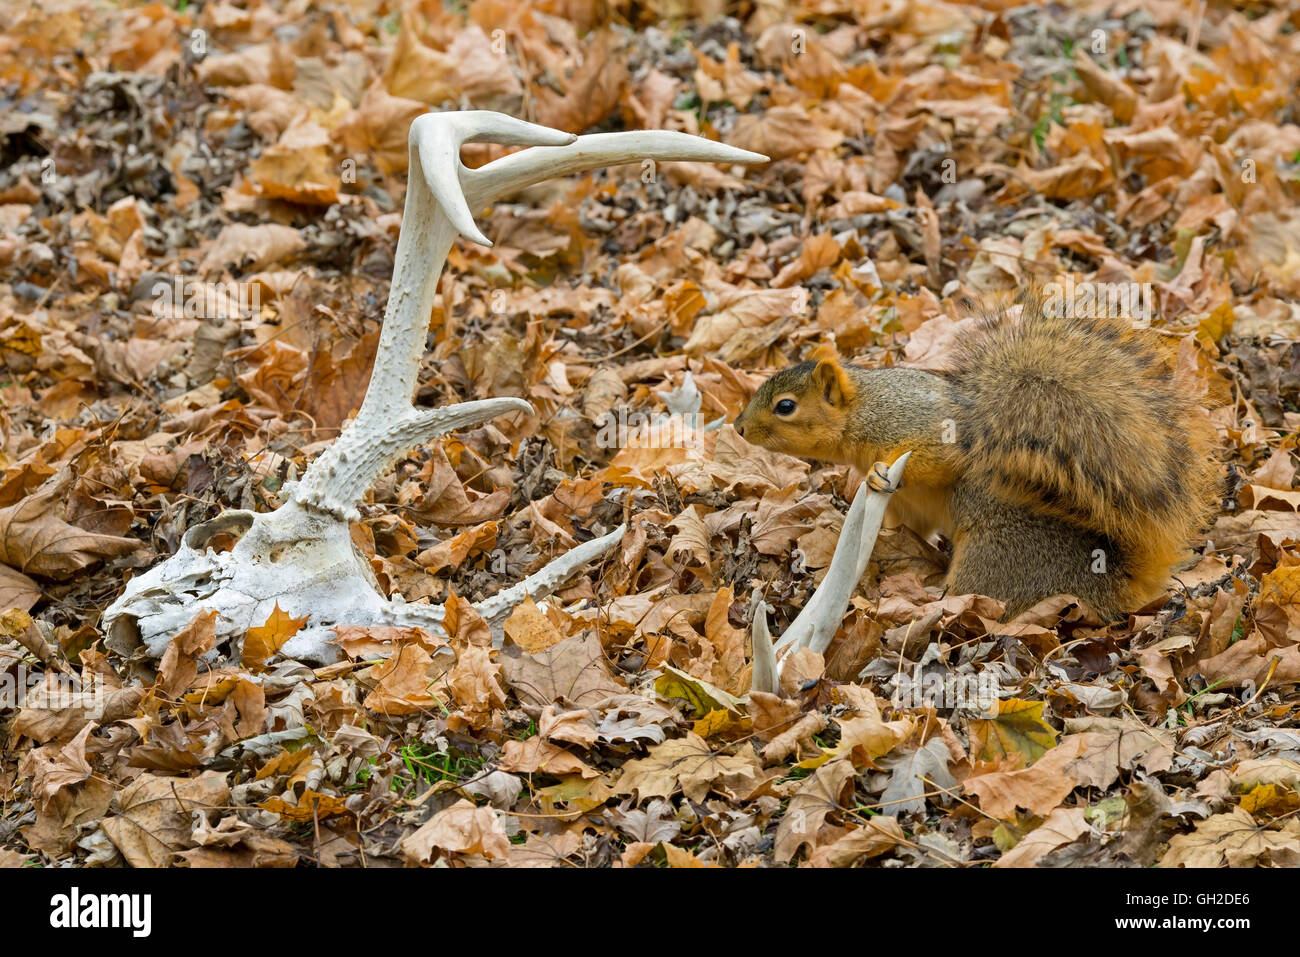 Eastern Fox Squirrel (Sciurus niger) on forest floor, and White-tailed Deer antlers, Autumn, E North America - Stock Image